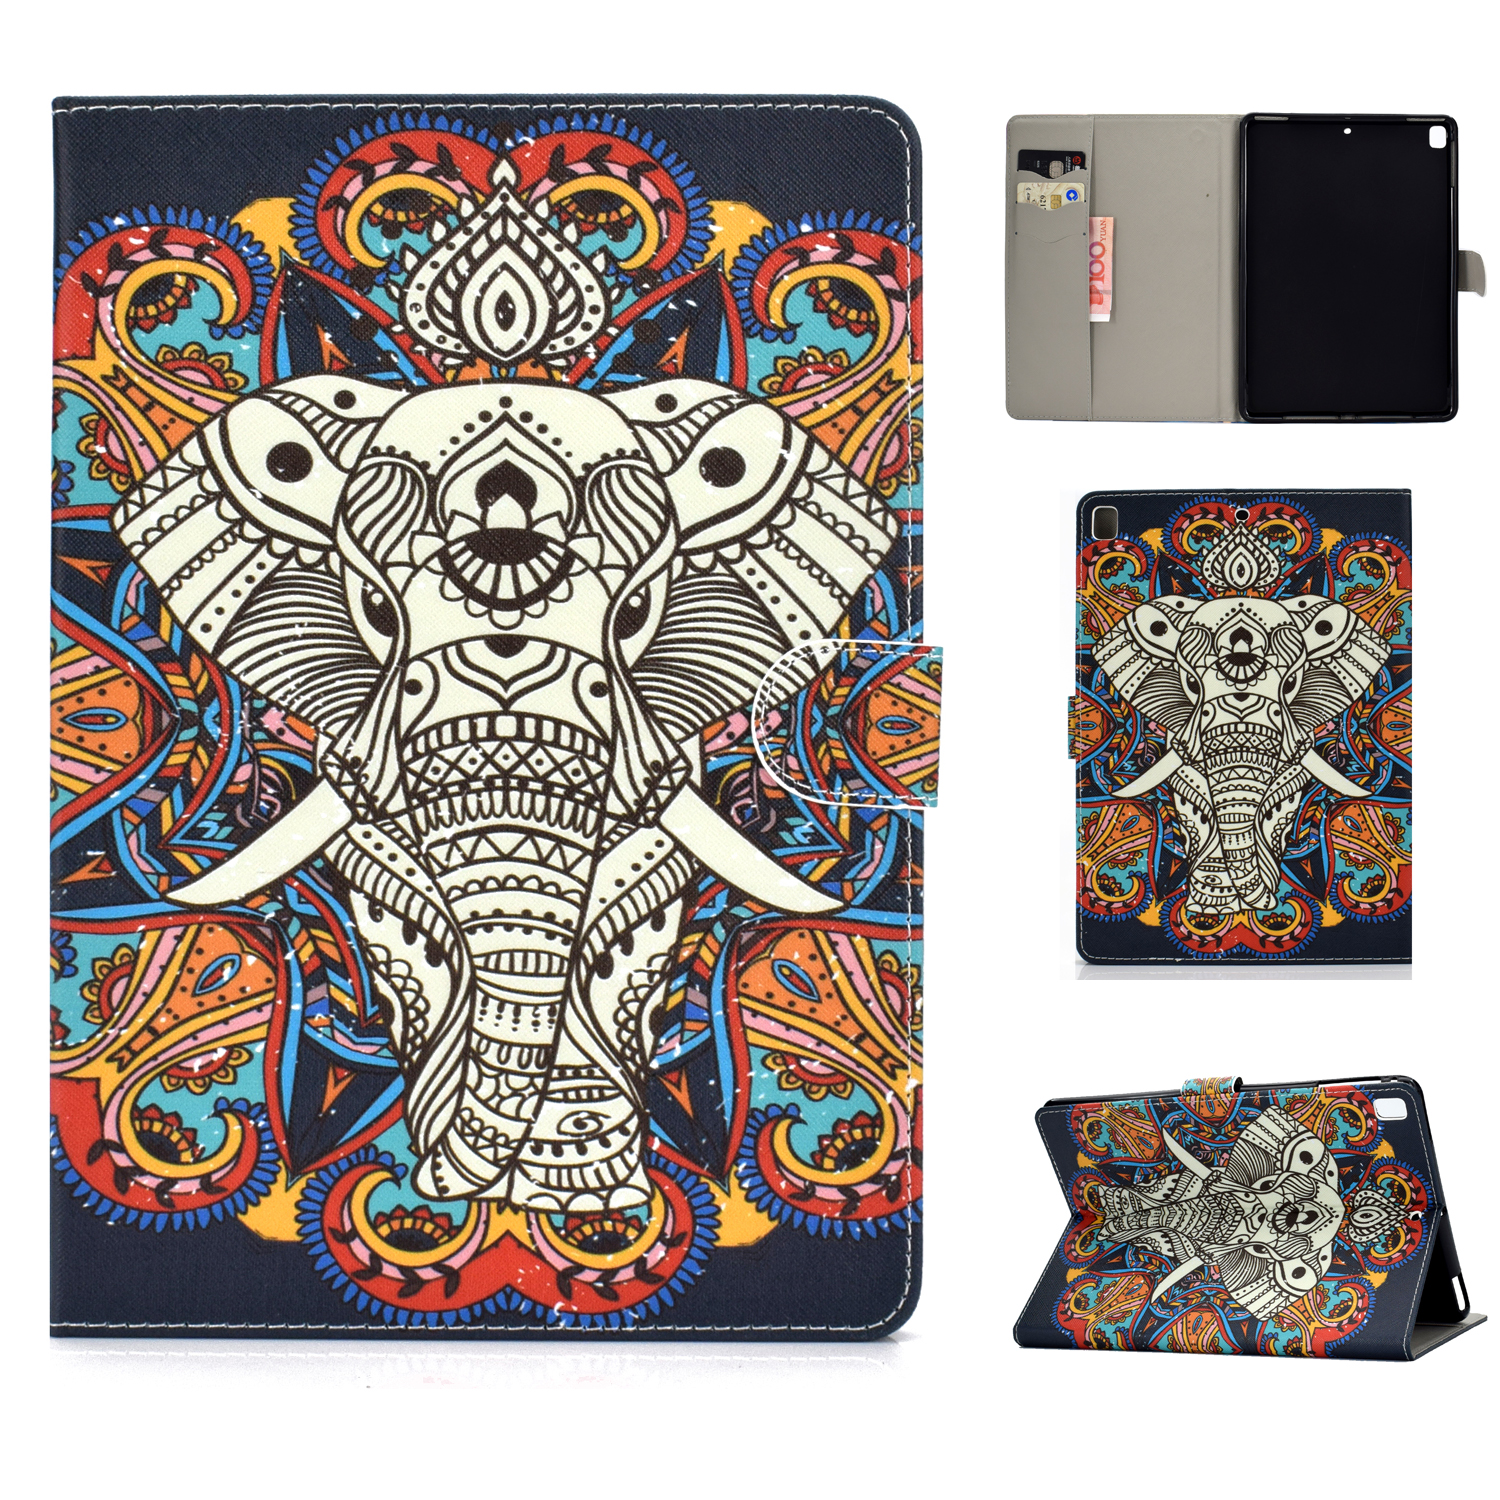 For iPad 5/6/7/8/9-iPad Pro9.7-iPad 9.7 Laptop Protective Case Color Painted Smart Stay PU Cover Fun elephant